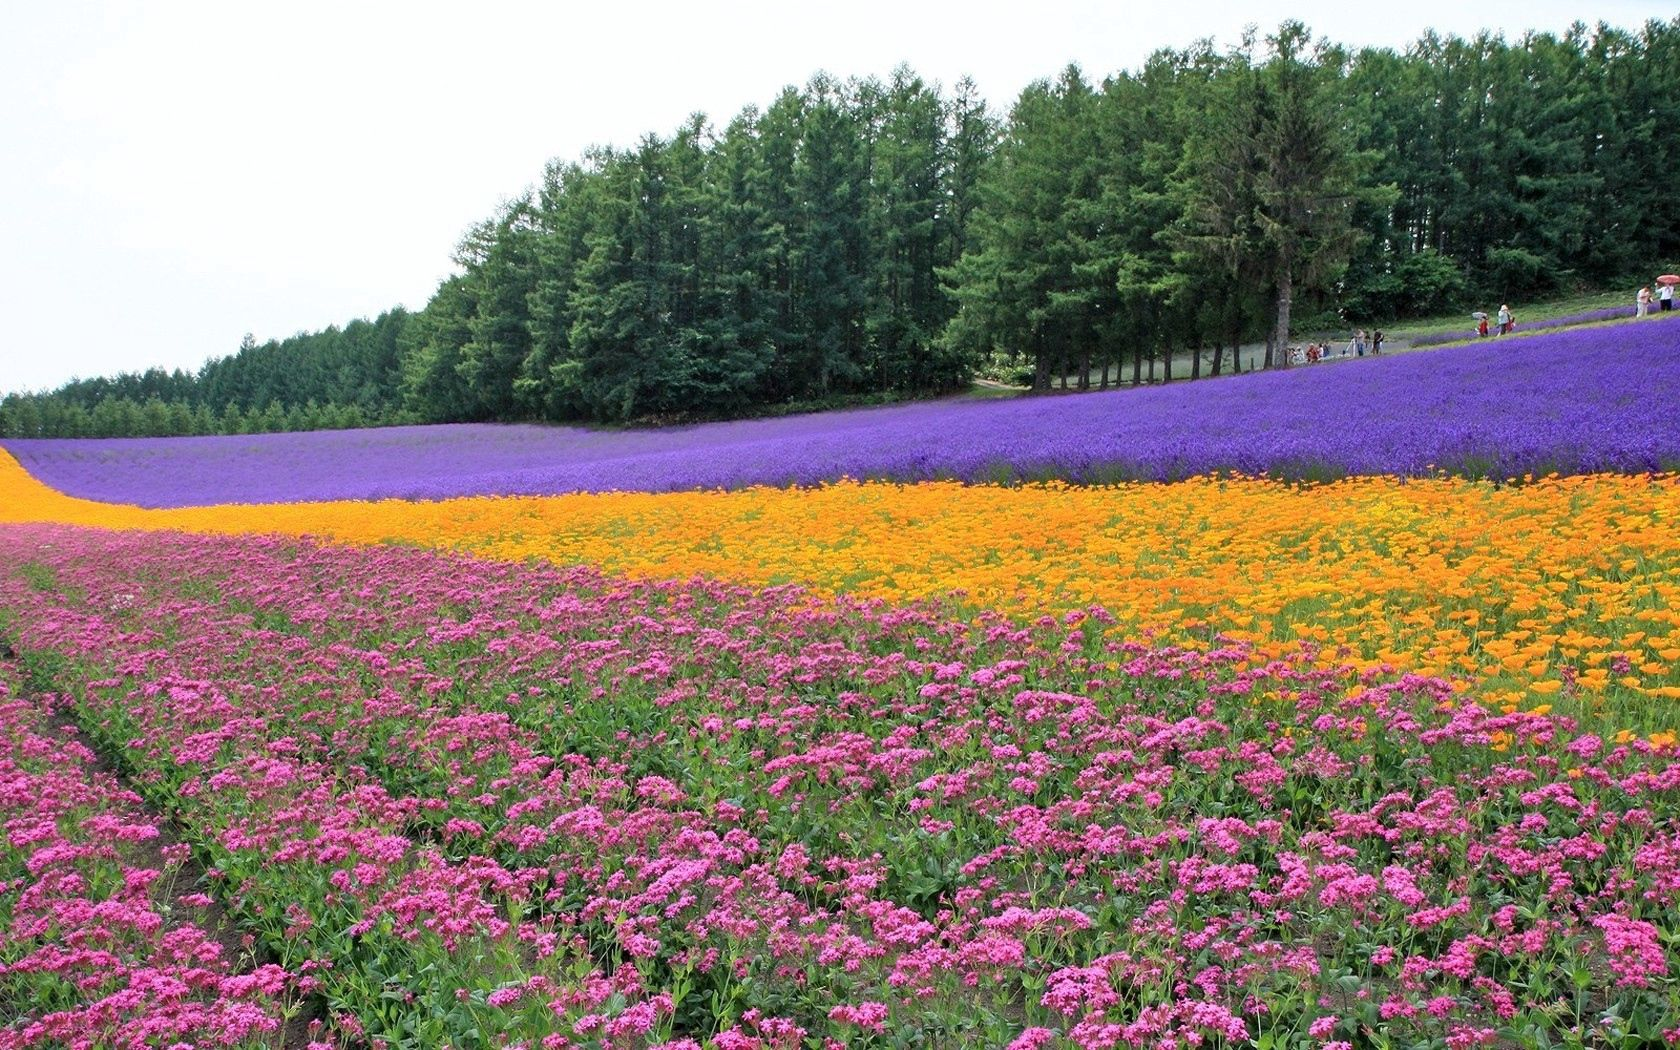 93727 download wallpaper Nature, Flowers, Trees, Field, Plantation, Rows, Ranks, Lavender screensavers and pictures for free